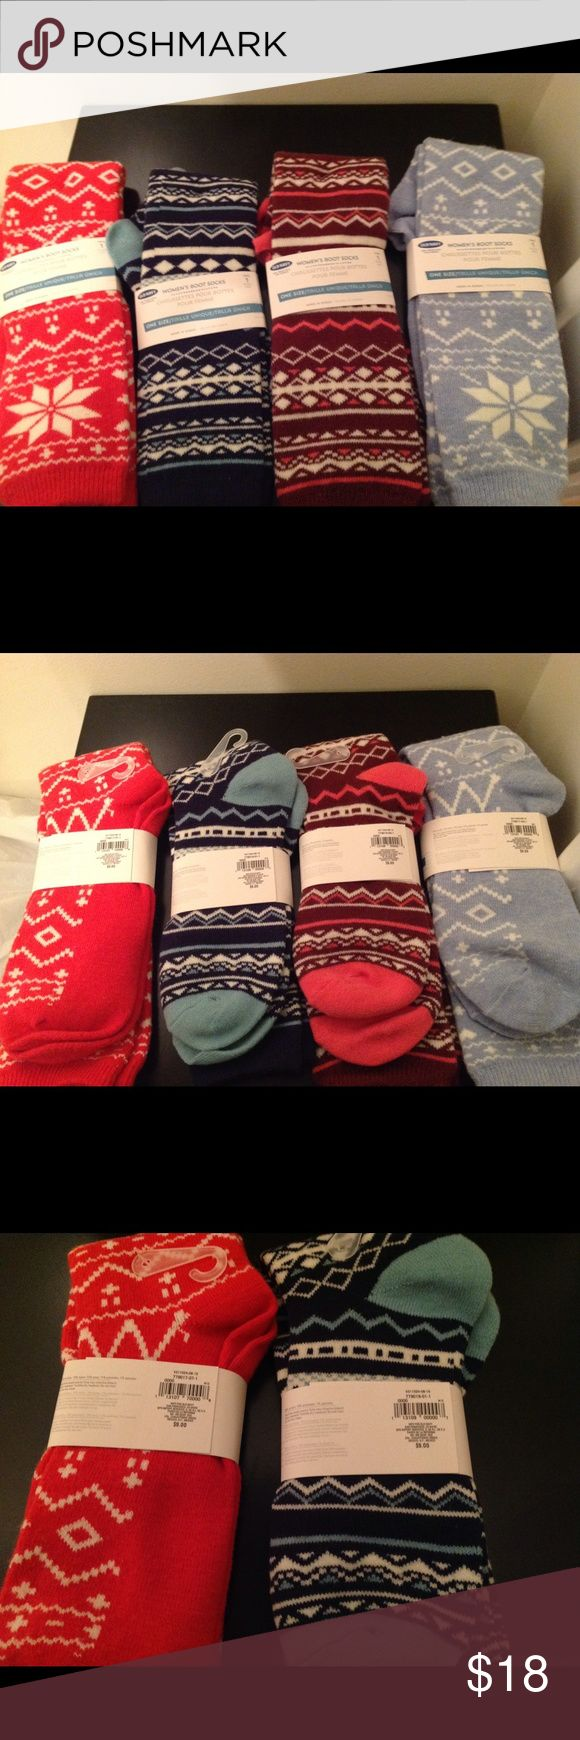 New Old Navy Women's boot socks NEW - 4 pair of socks for $18.  Old Navy Women's boot socks.  Warm and comfortable in super cute colors.  Each pair of socks originally $9 a pair. Old Navy Accessories Hosiery & Socks